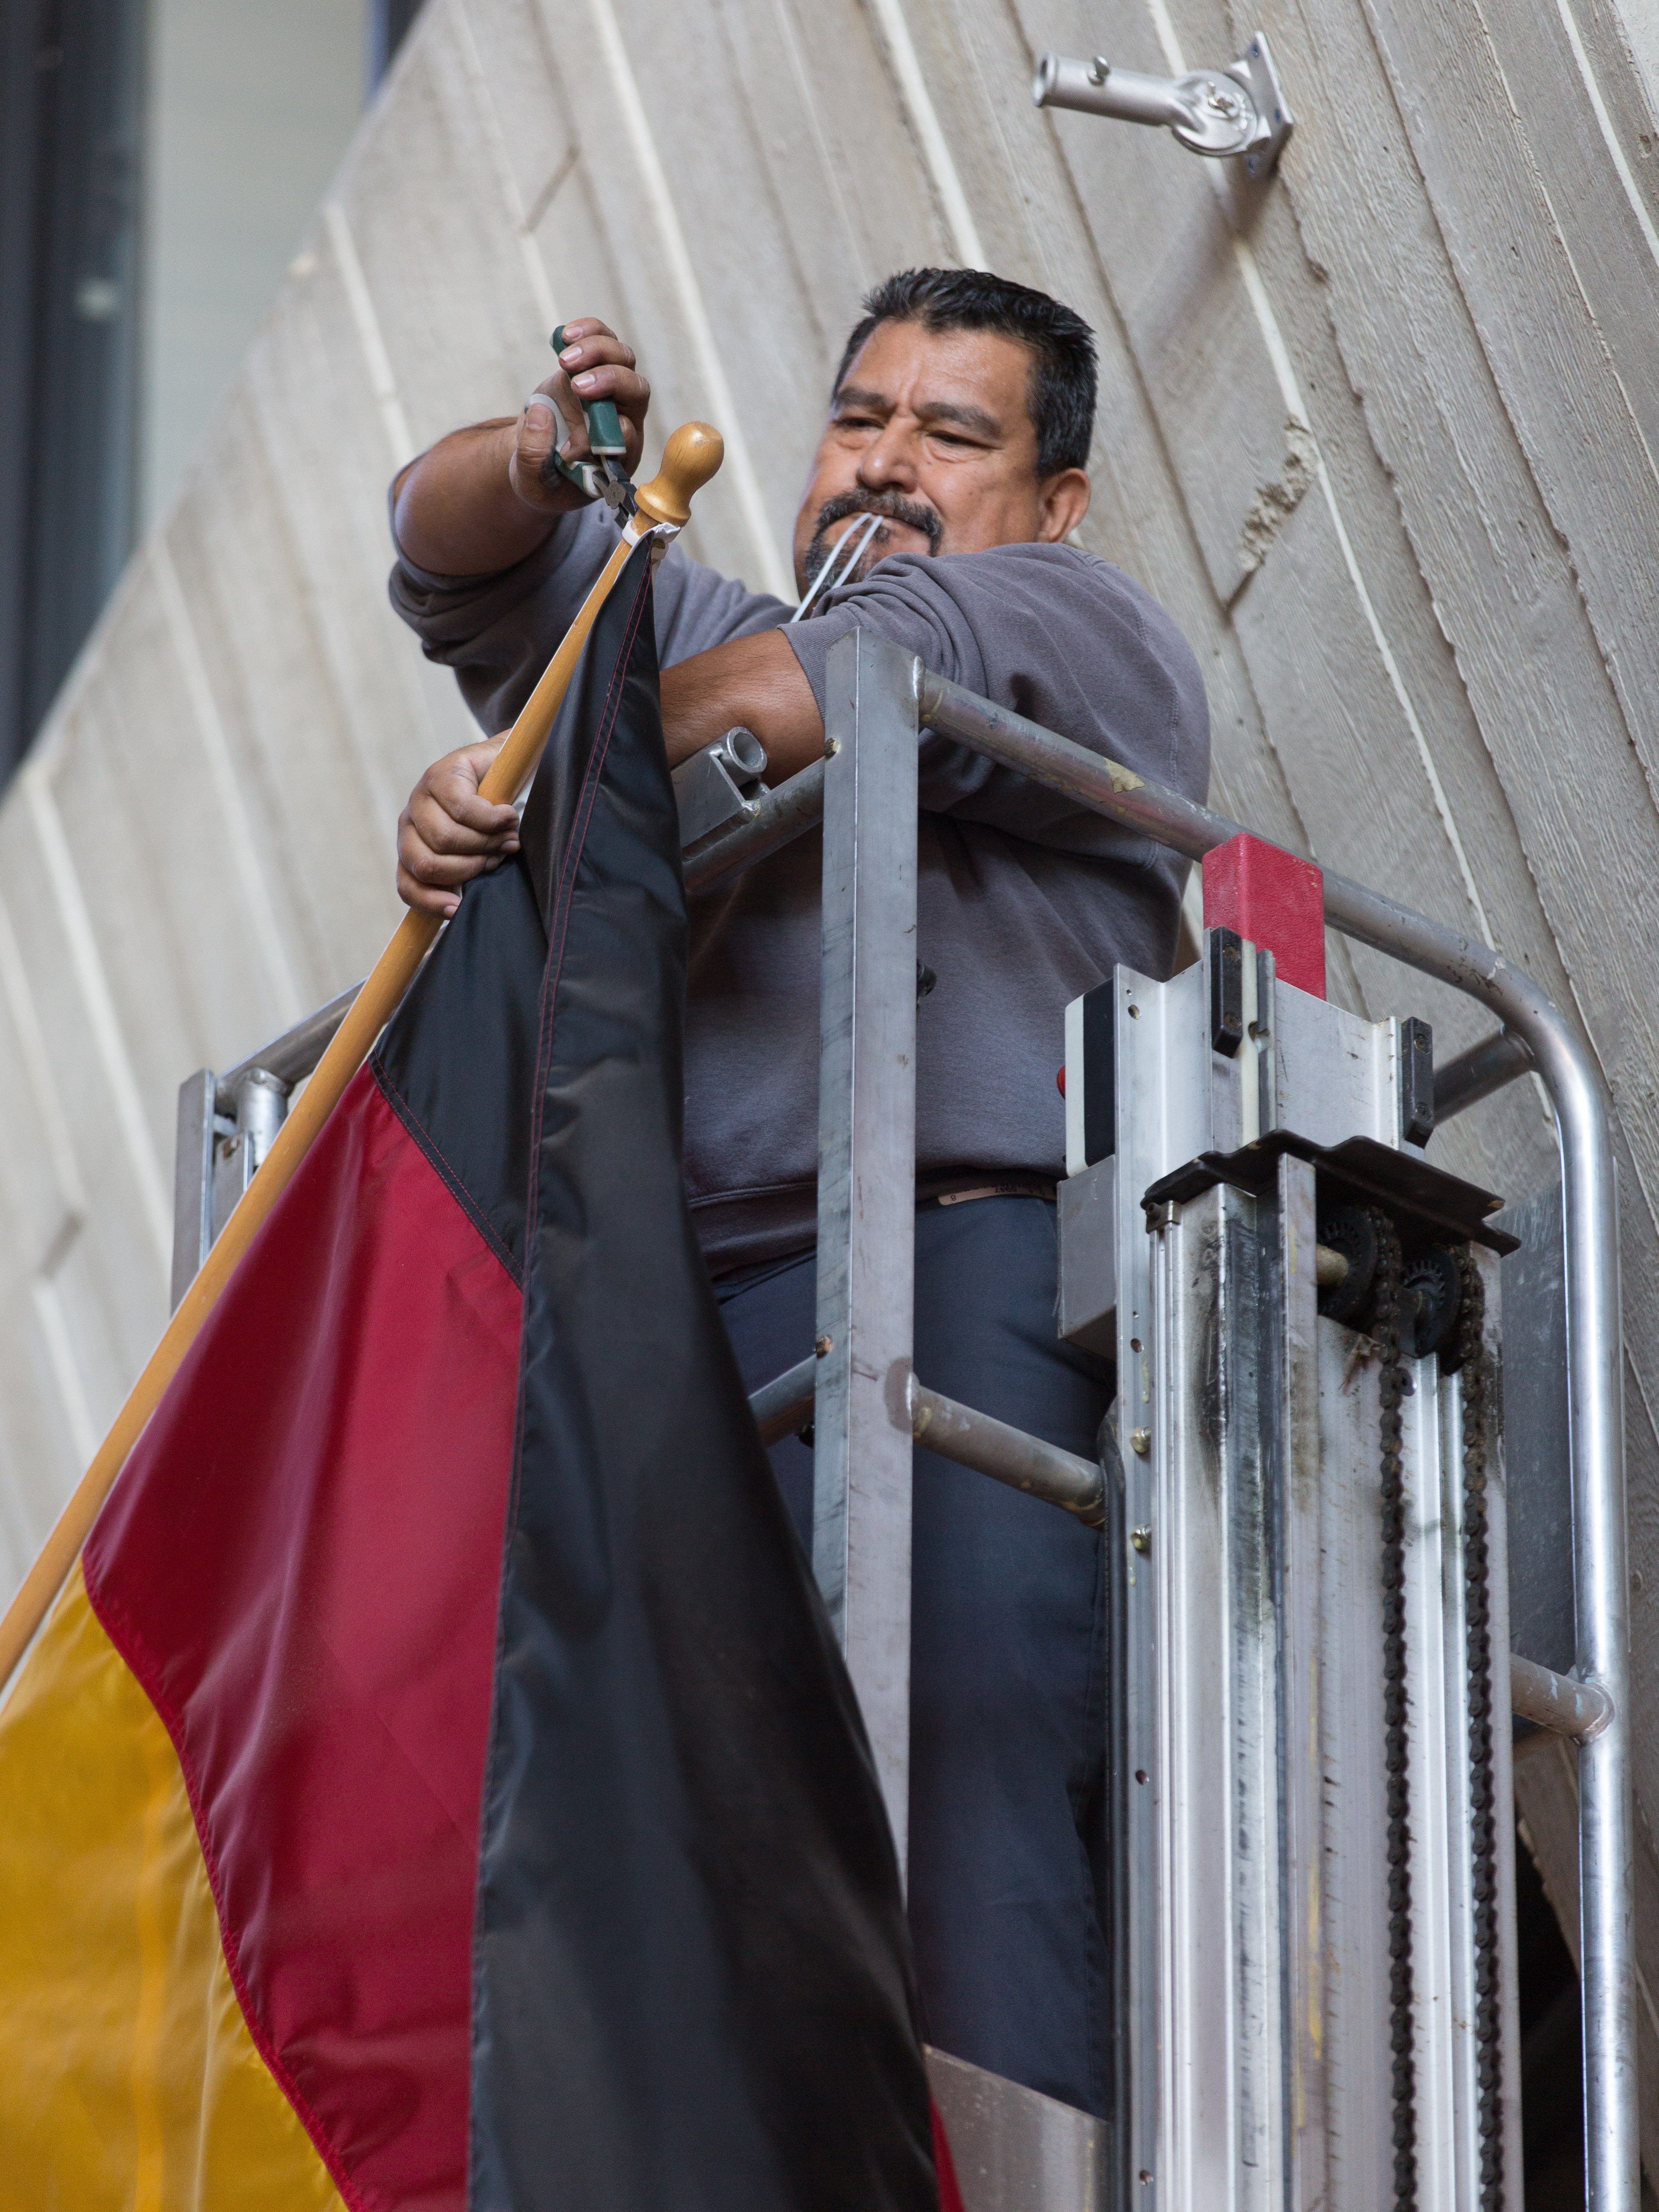 (1/2) March 3: Thanks, Fidencio Rodriguez! The German flag comes down .... Photo: Elliott McCrory, people